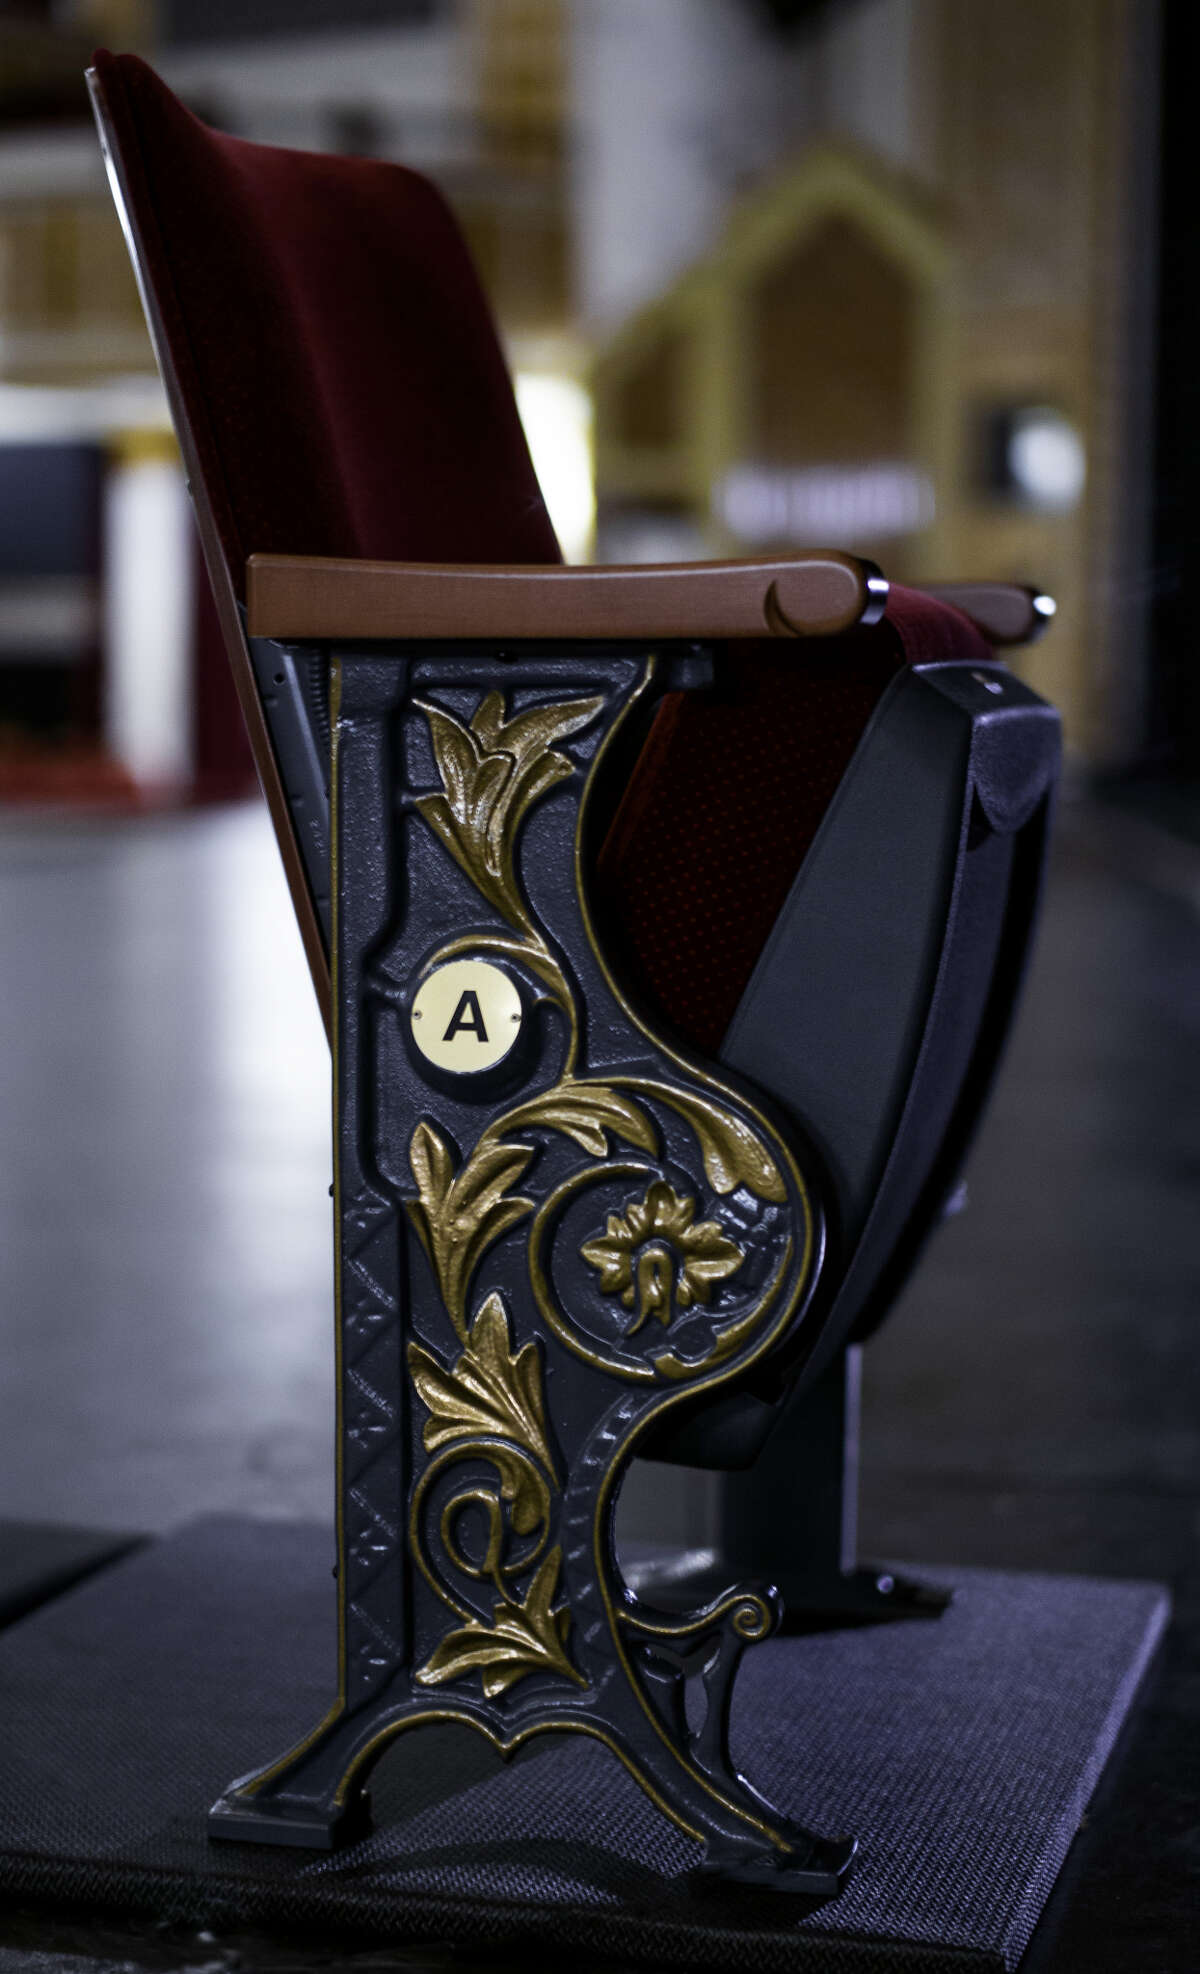 One of the new seats to be installed at Proctors in Schenectady this summer. (Photo by Richard Lovrich/Proctors.)